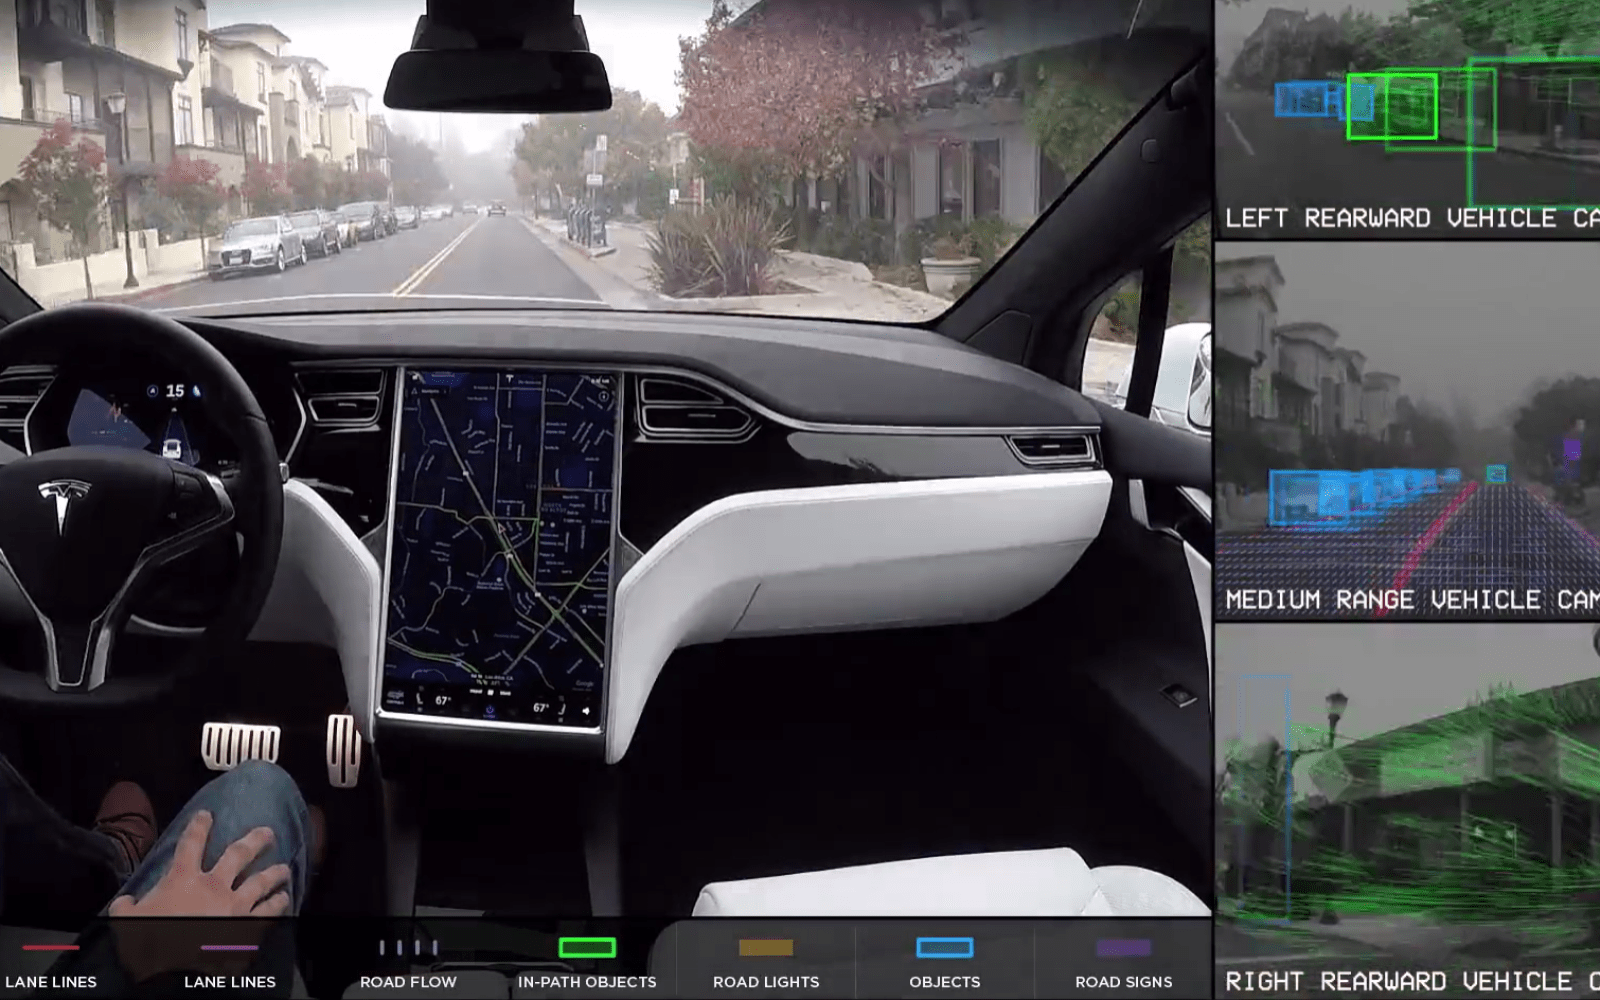 Analyst warns of Tesla's Autopilot machine learning potentially rendering all other cars obsolete